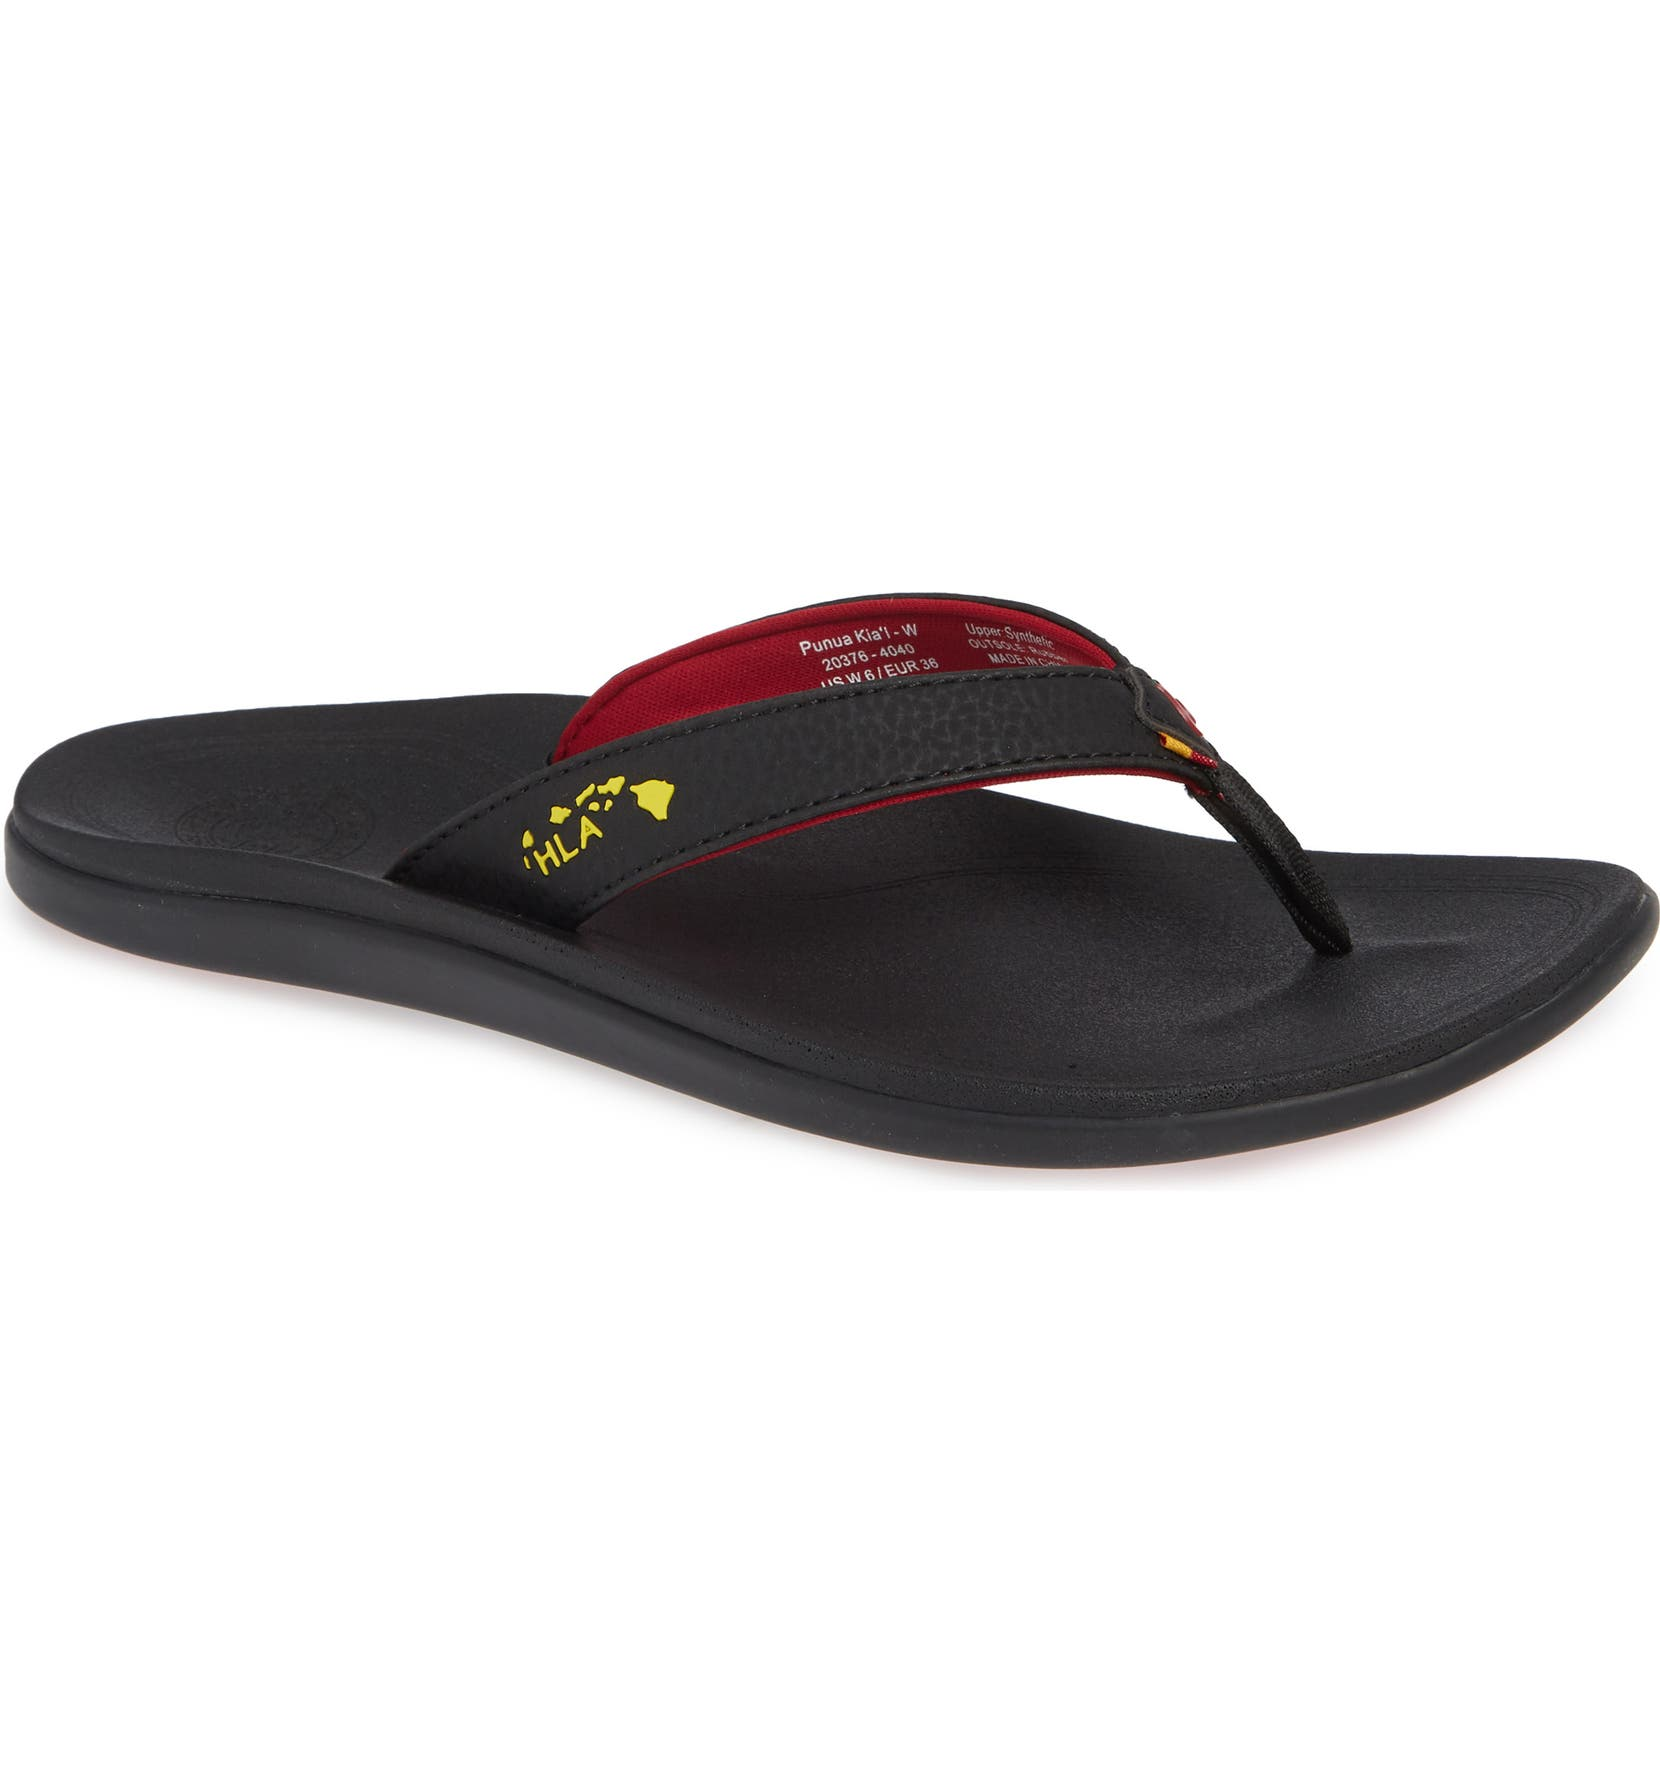 94fbd5a5cd20 ... more photos be09f 32ed2 OluKai Punua Kiai Flip Flop (Women) Nordstrom  ...